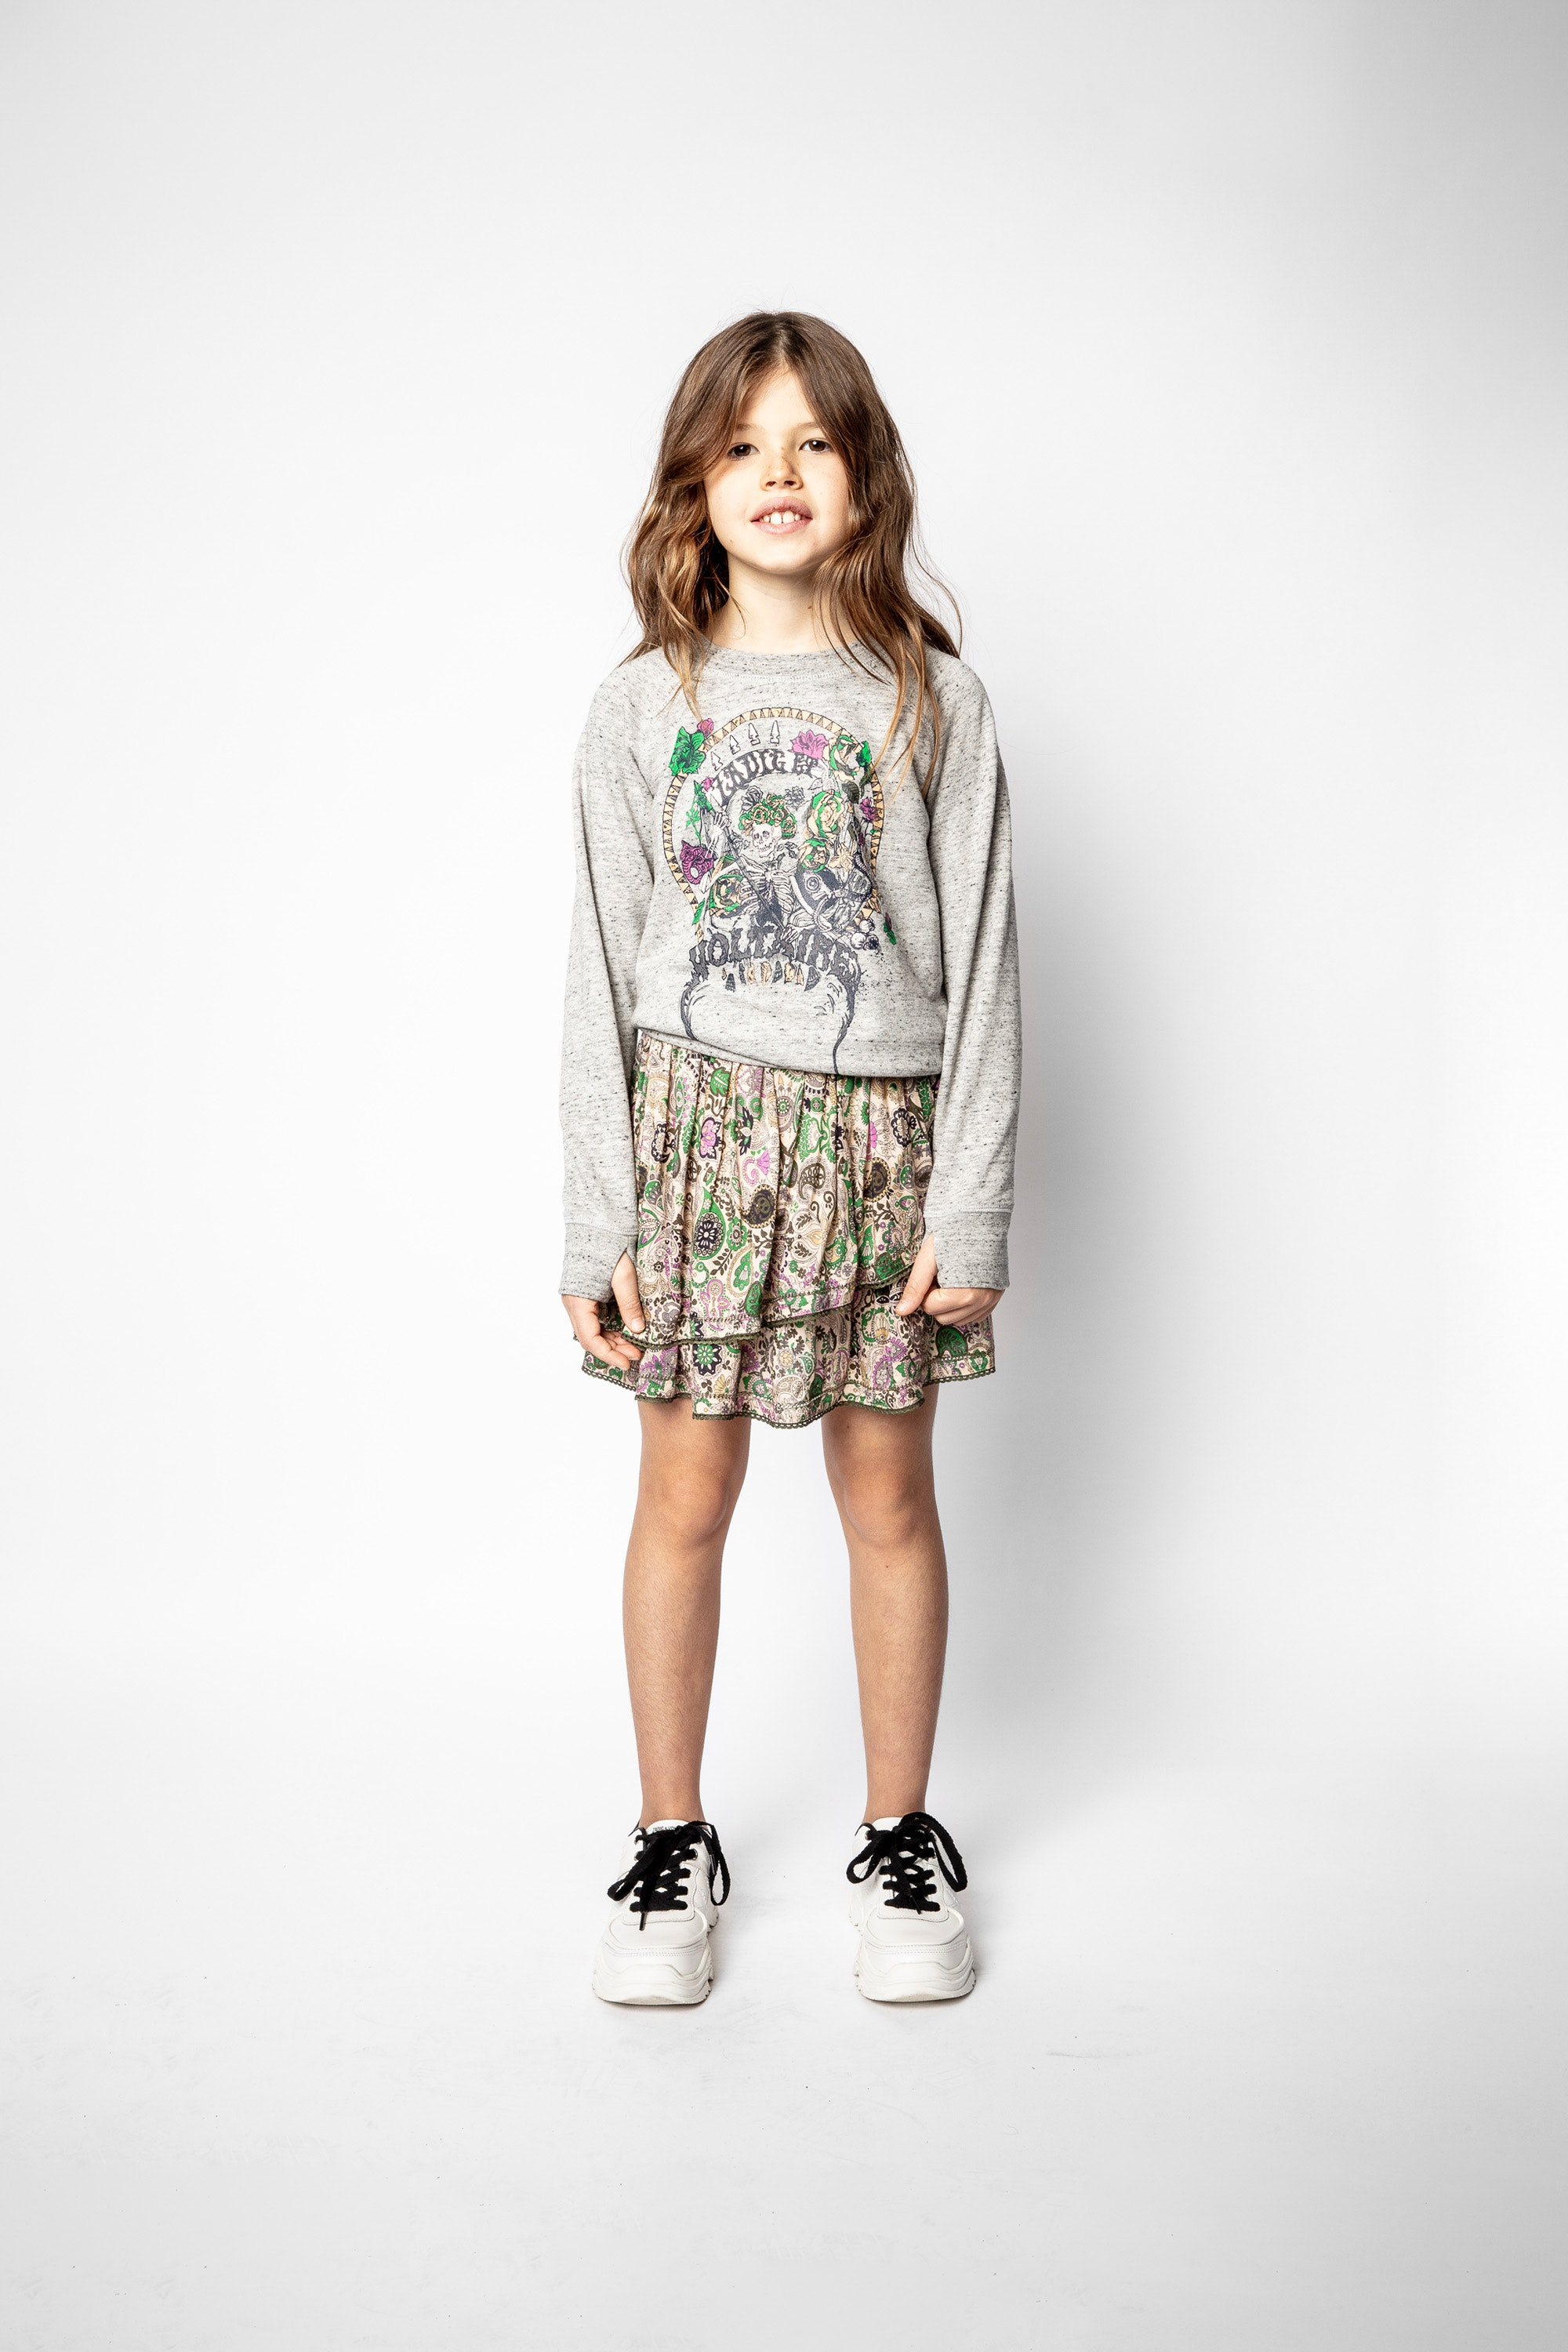 Child's Alexa Skirt